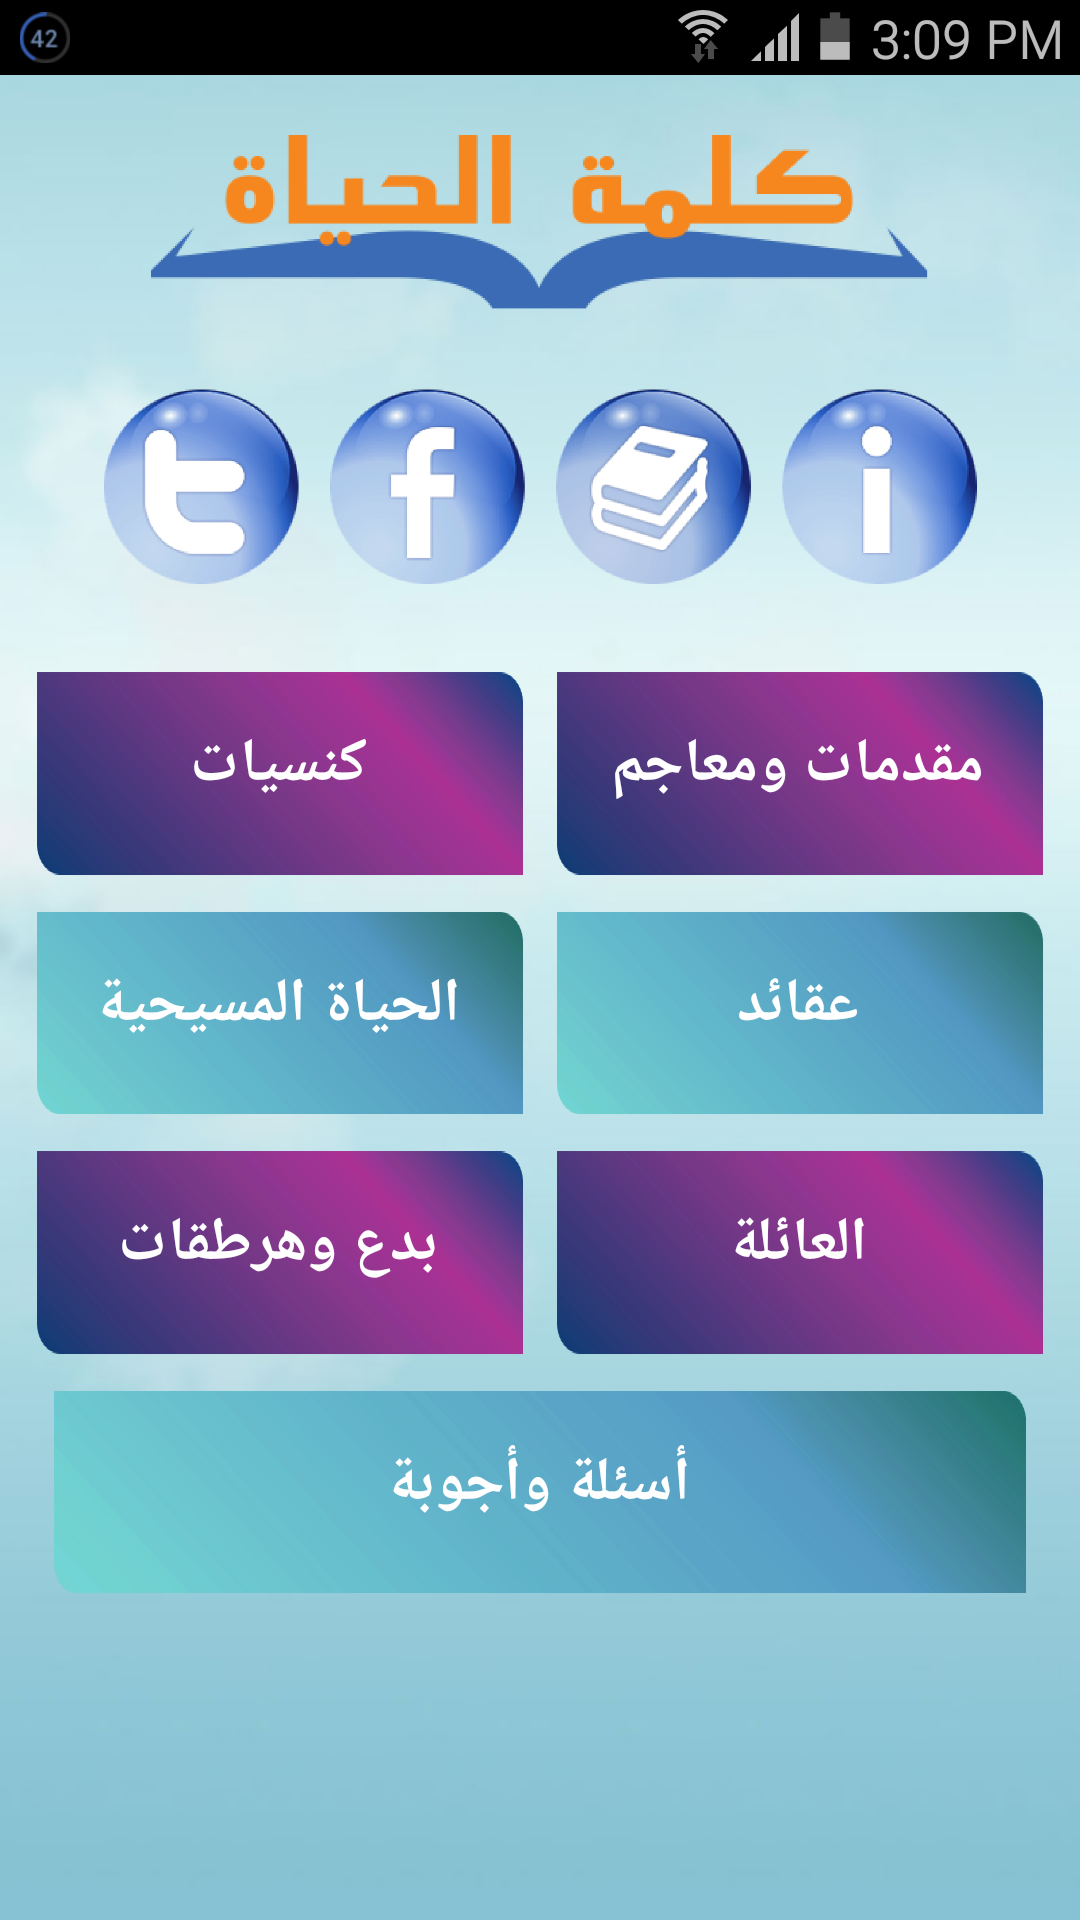 Word of Life Library App - Arabic Bible Outreach Ministry